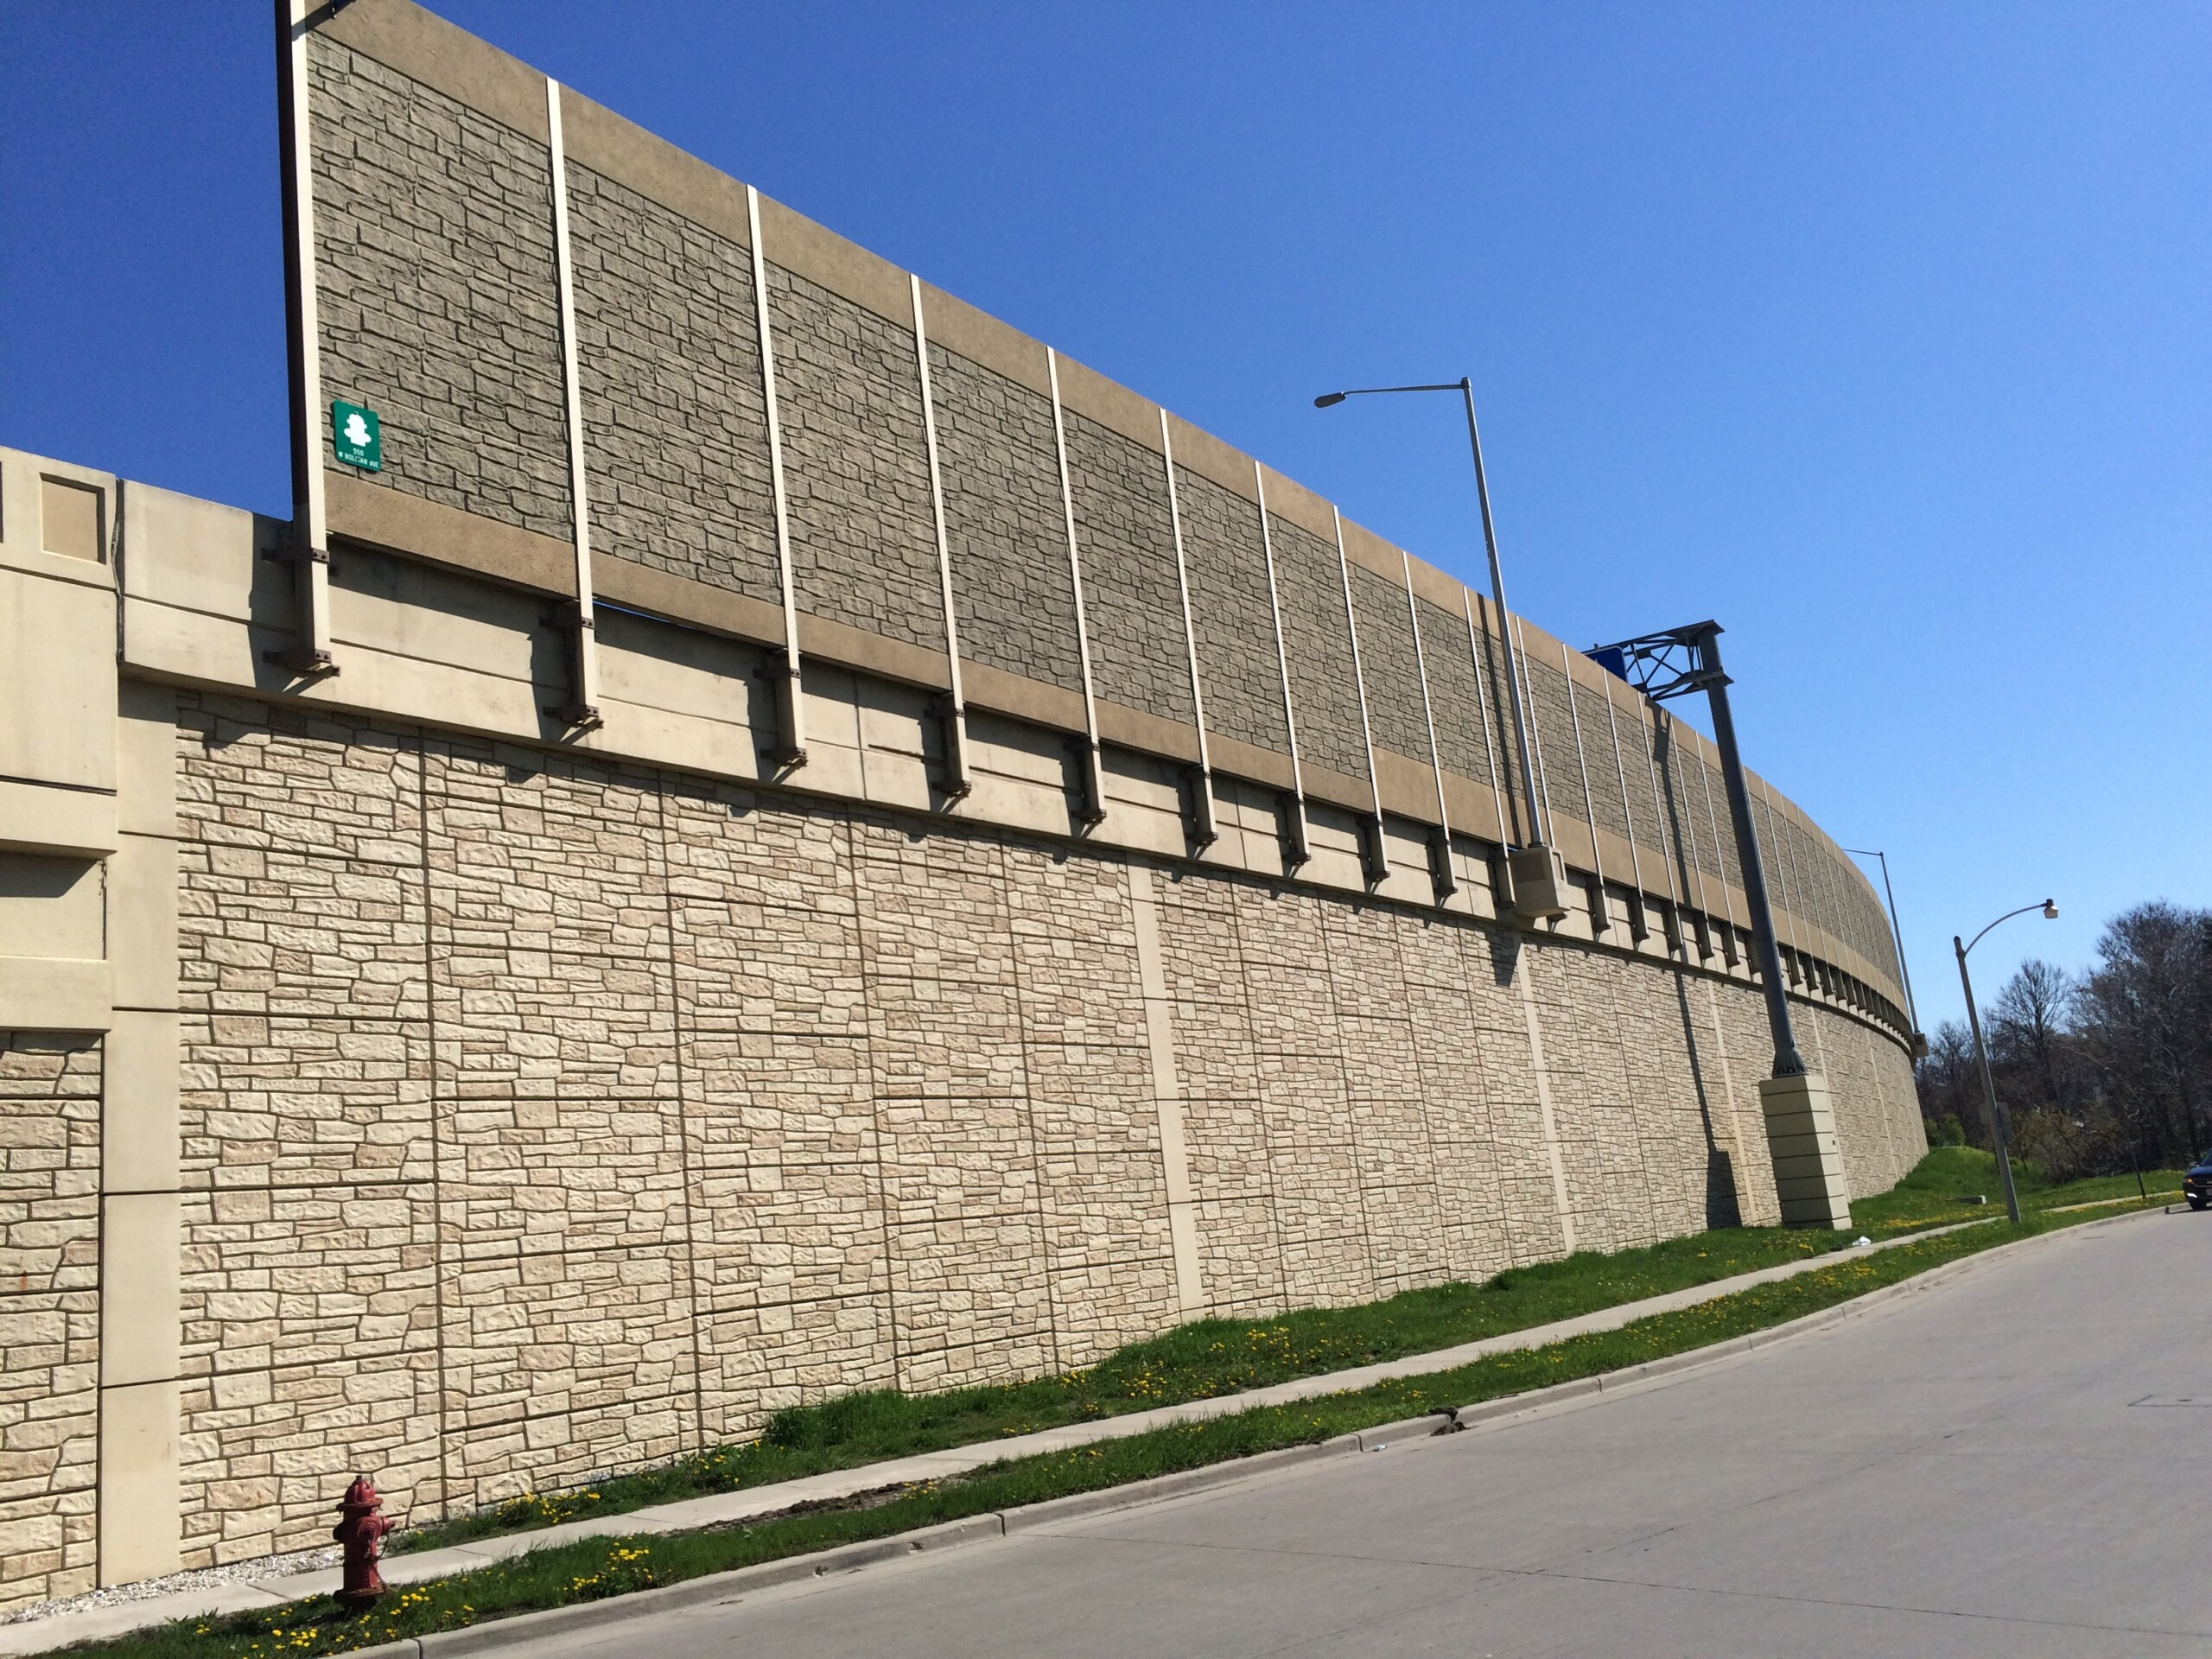 A precast noise barrier along I-94 in Milwaukee, WI.